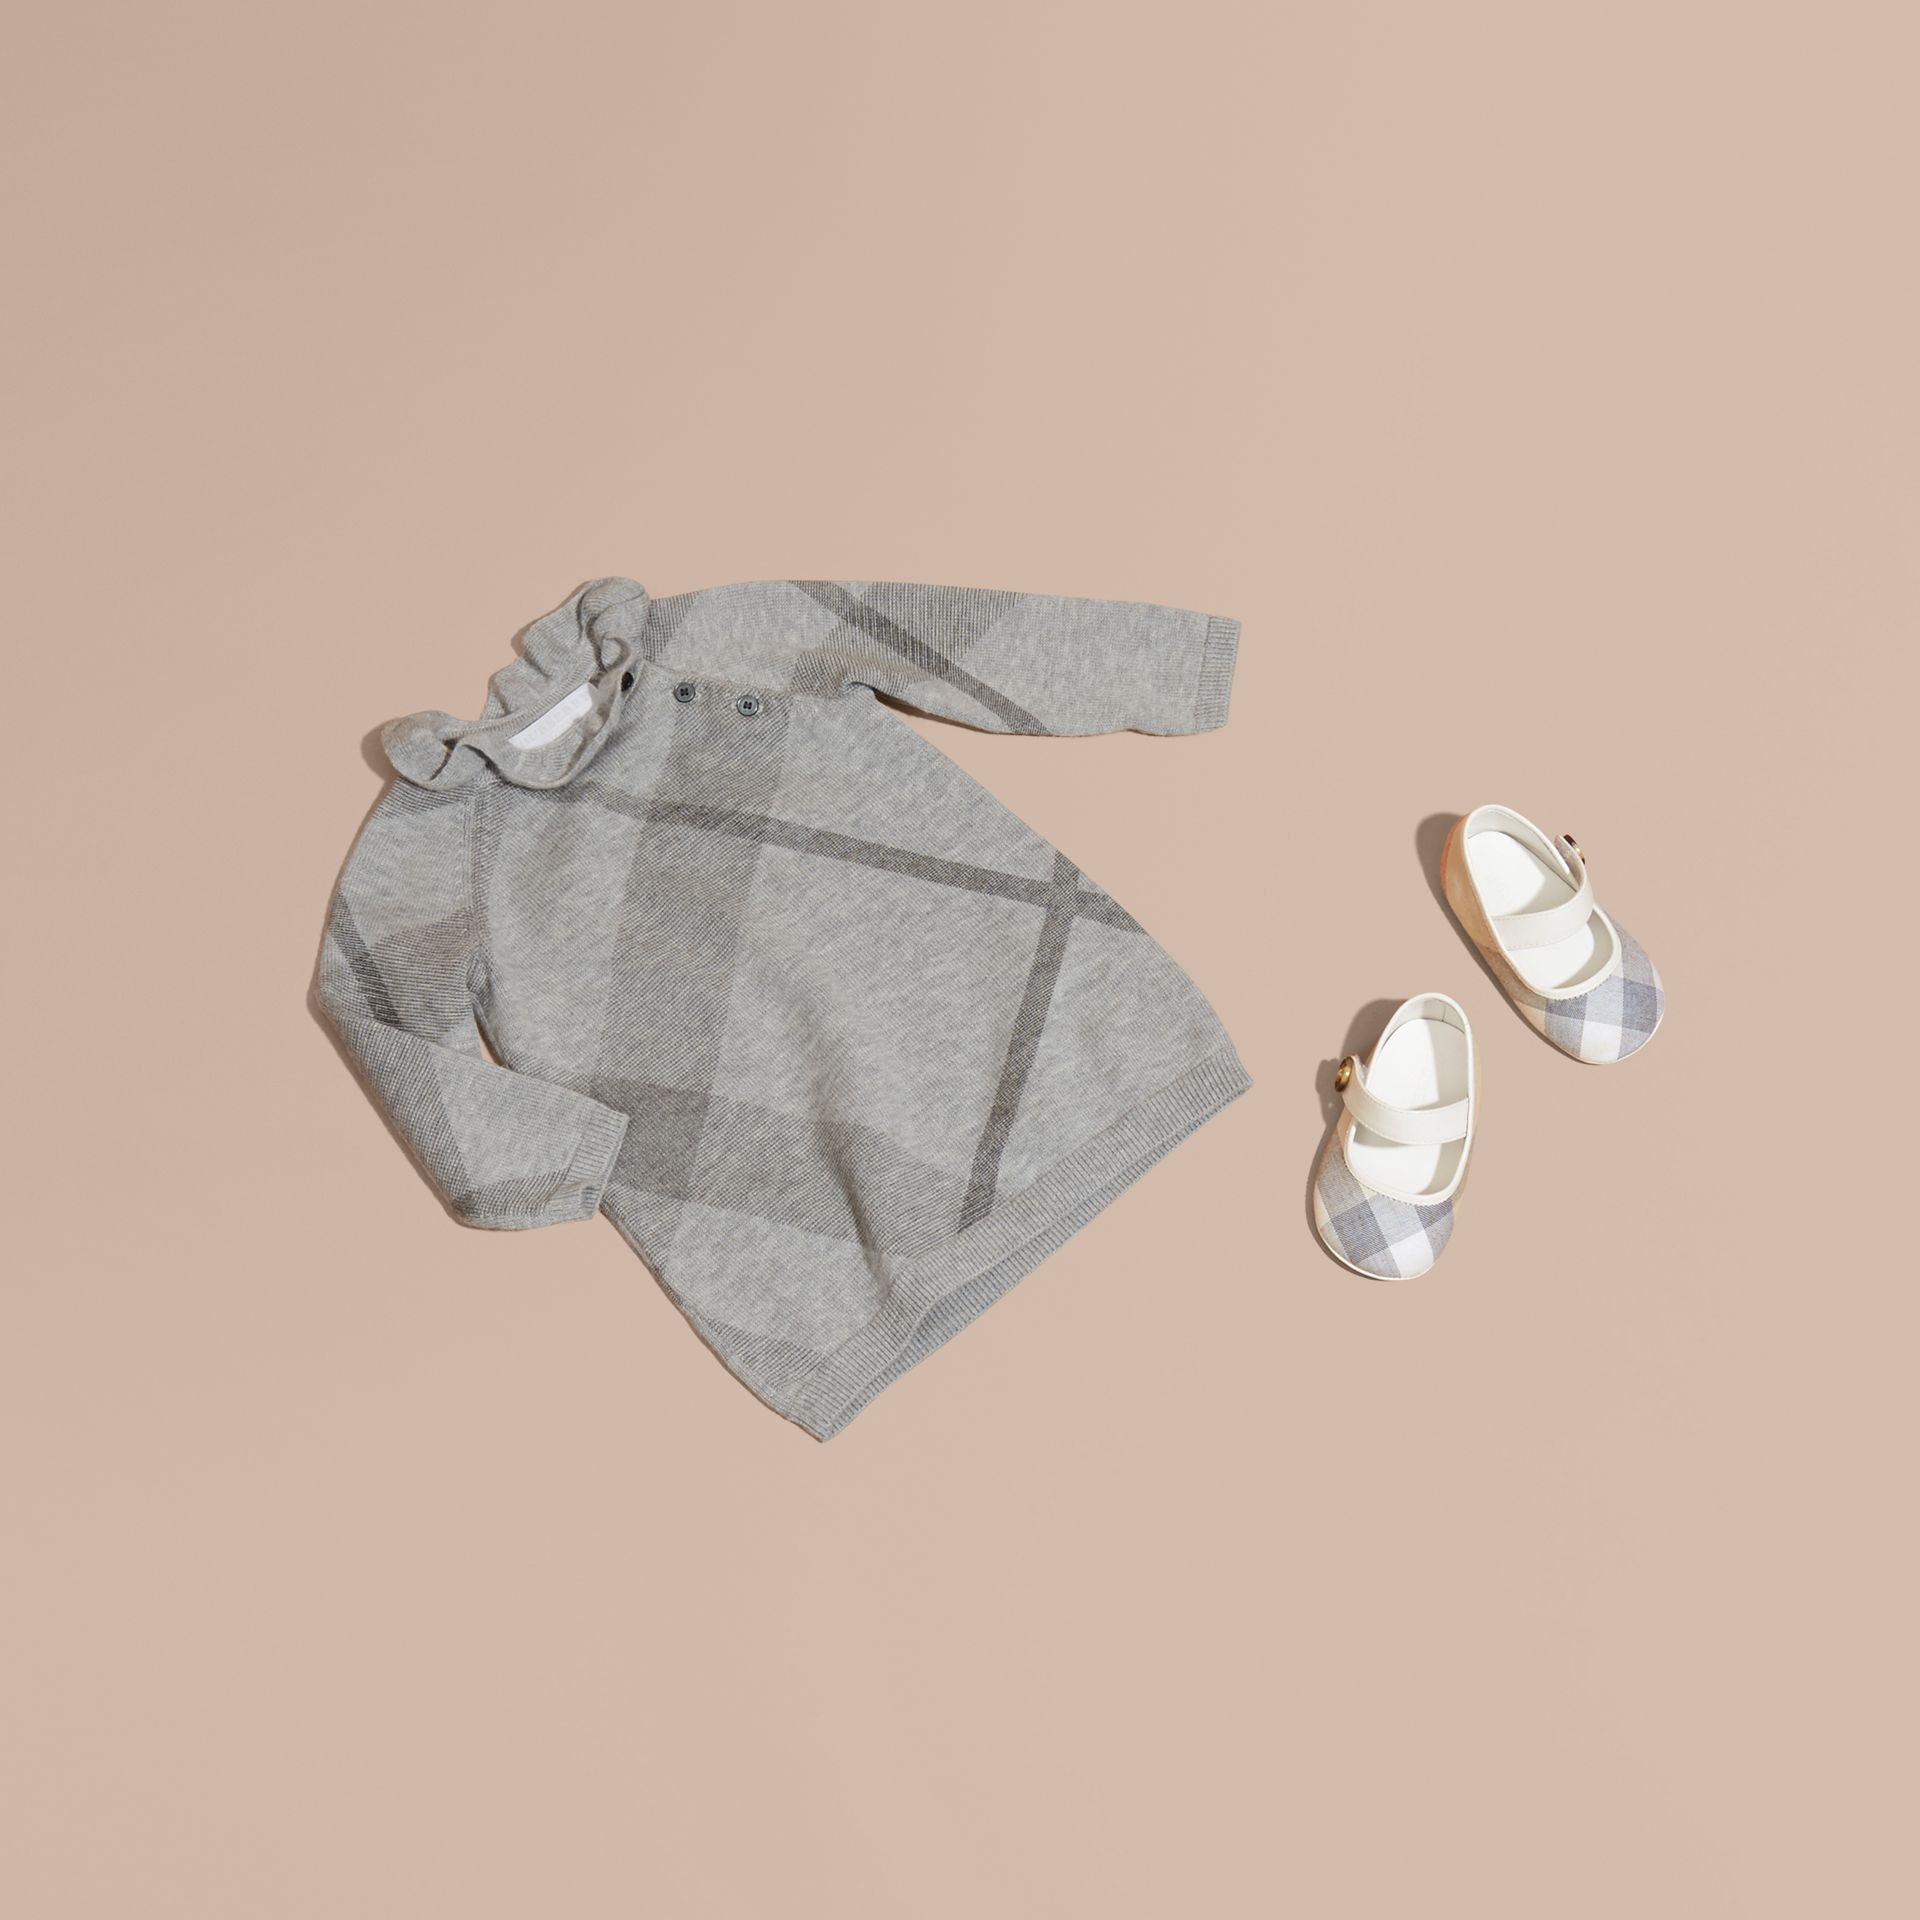 Pale grey melange Check Cashmere Cotton Ruffle Collar Dress - gallery image 1